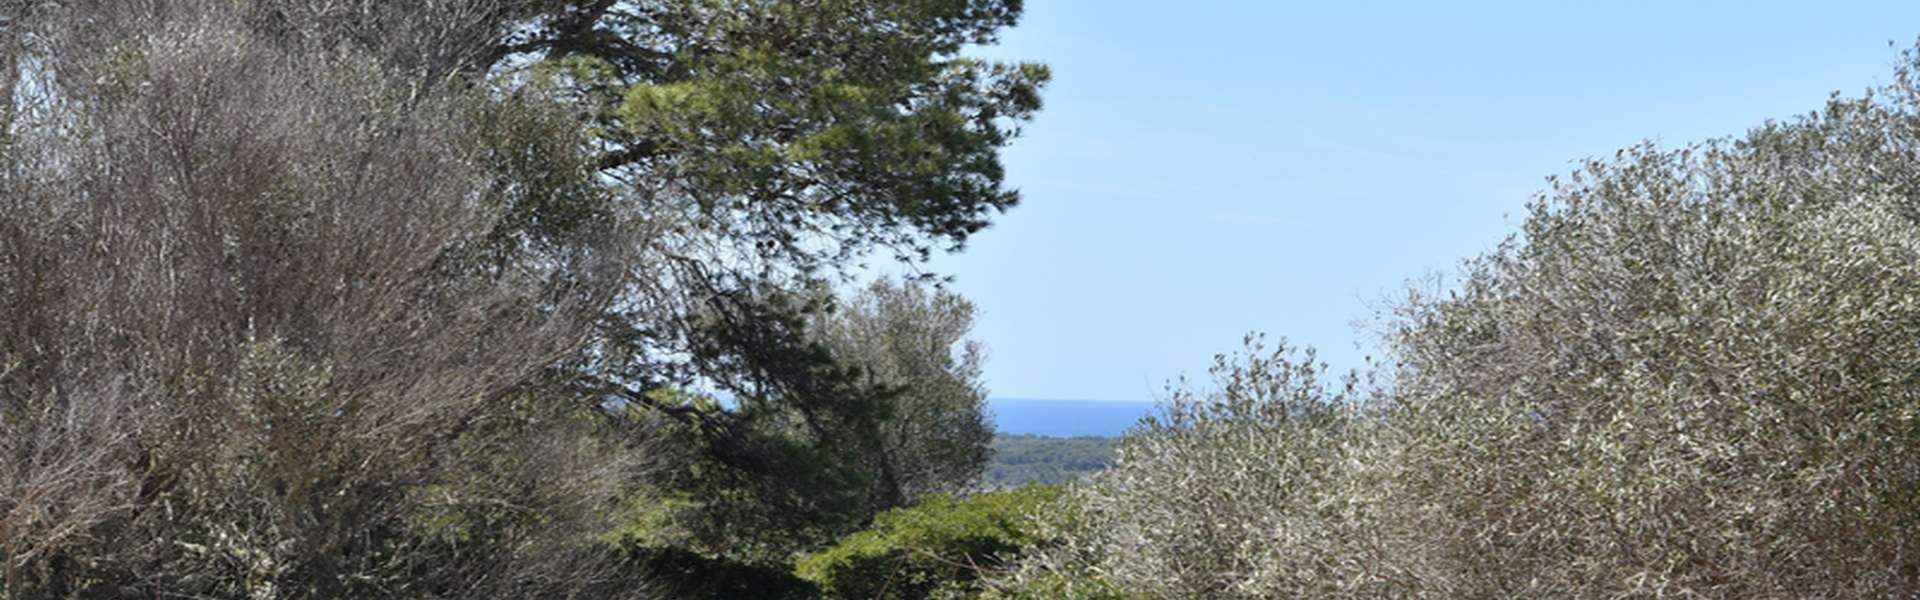 Santanyí - Plot with building project & sea view